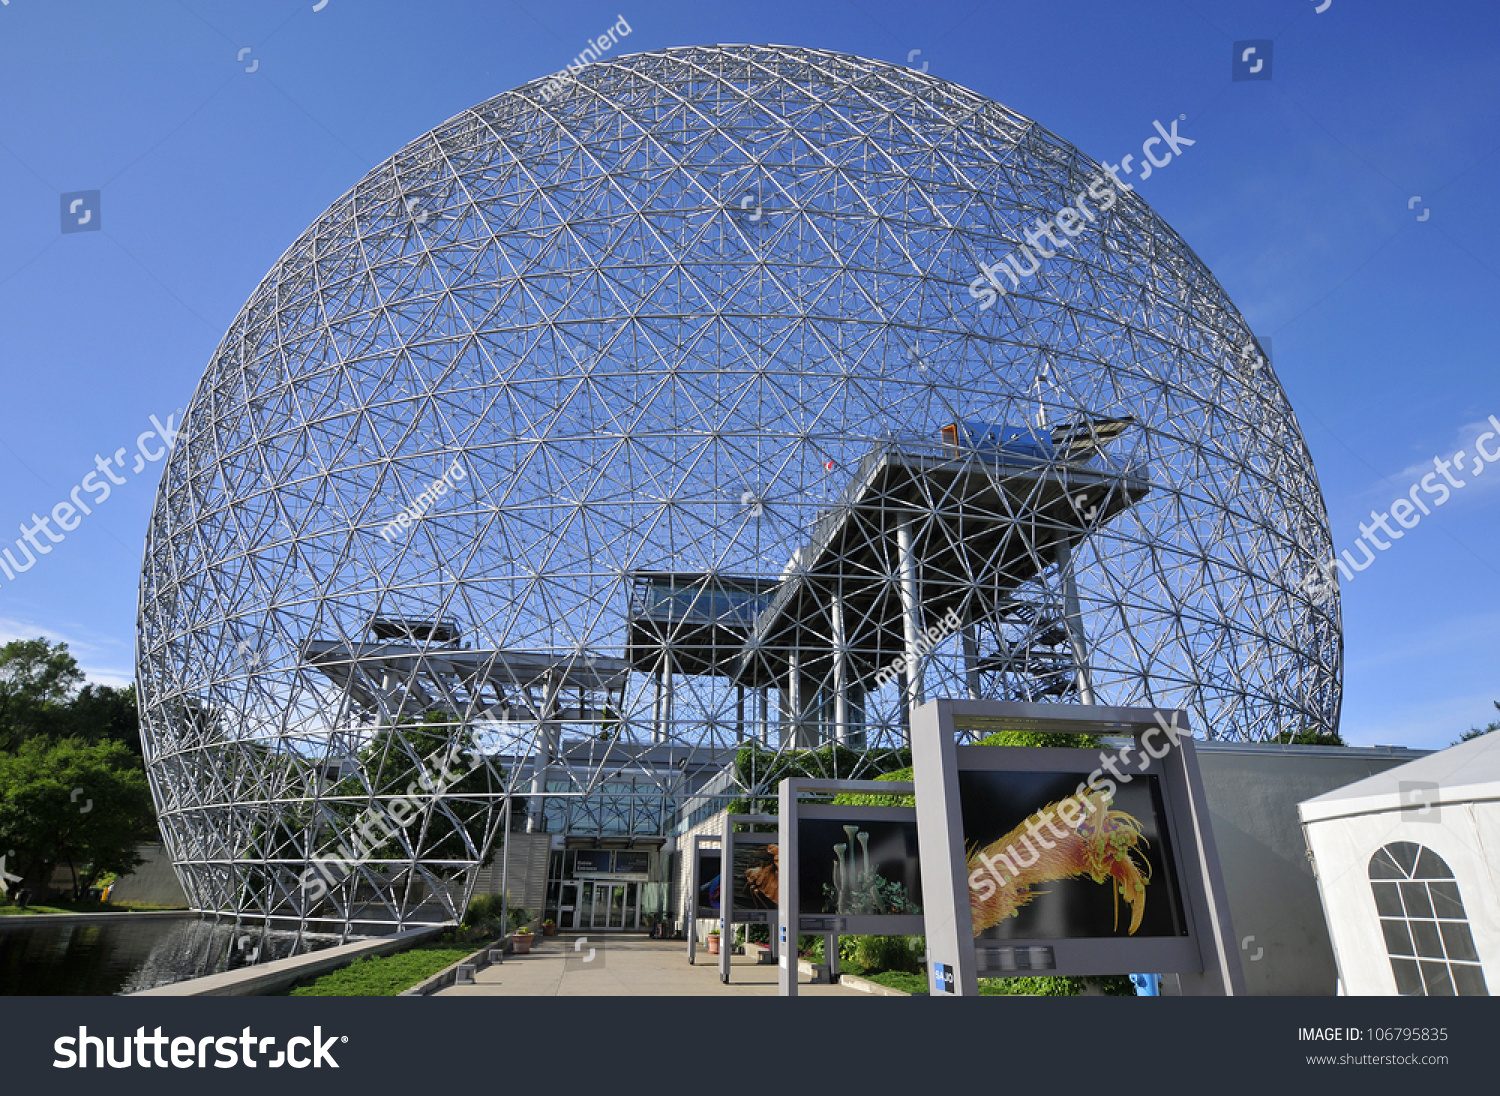 how to get to the biosphere montreal